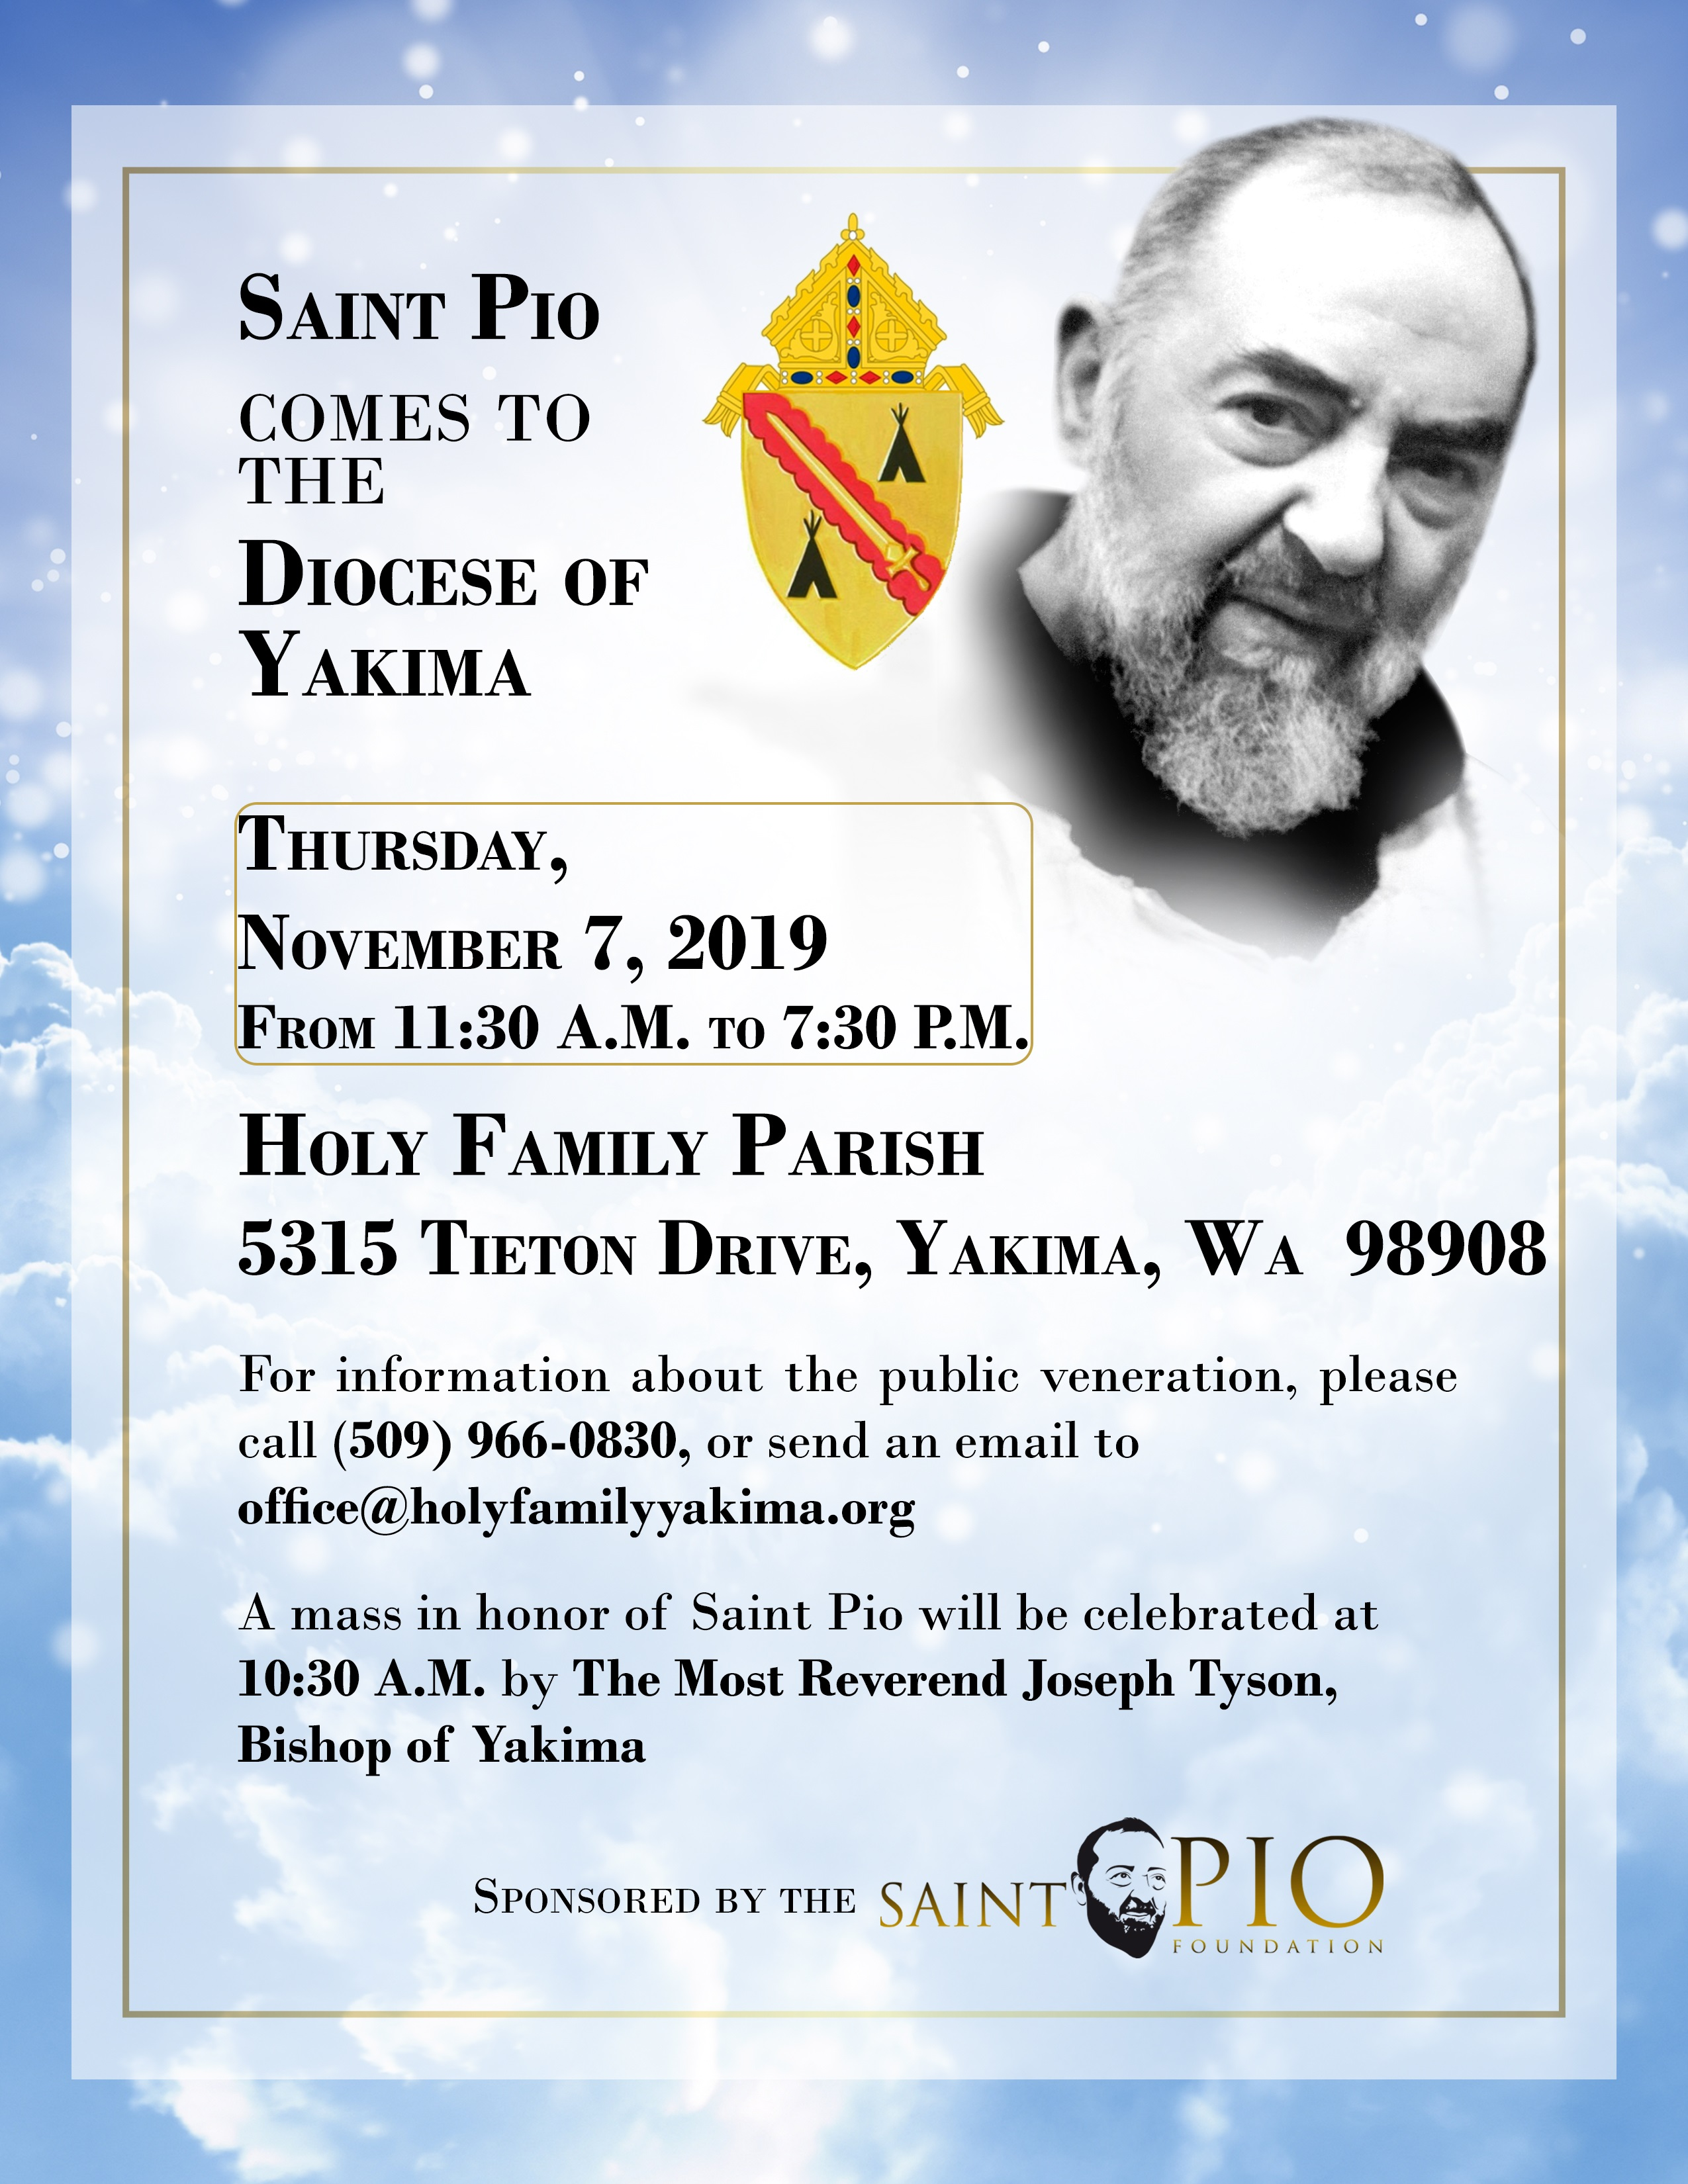 Saint Pio Comes to The Diocese of Yakima